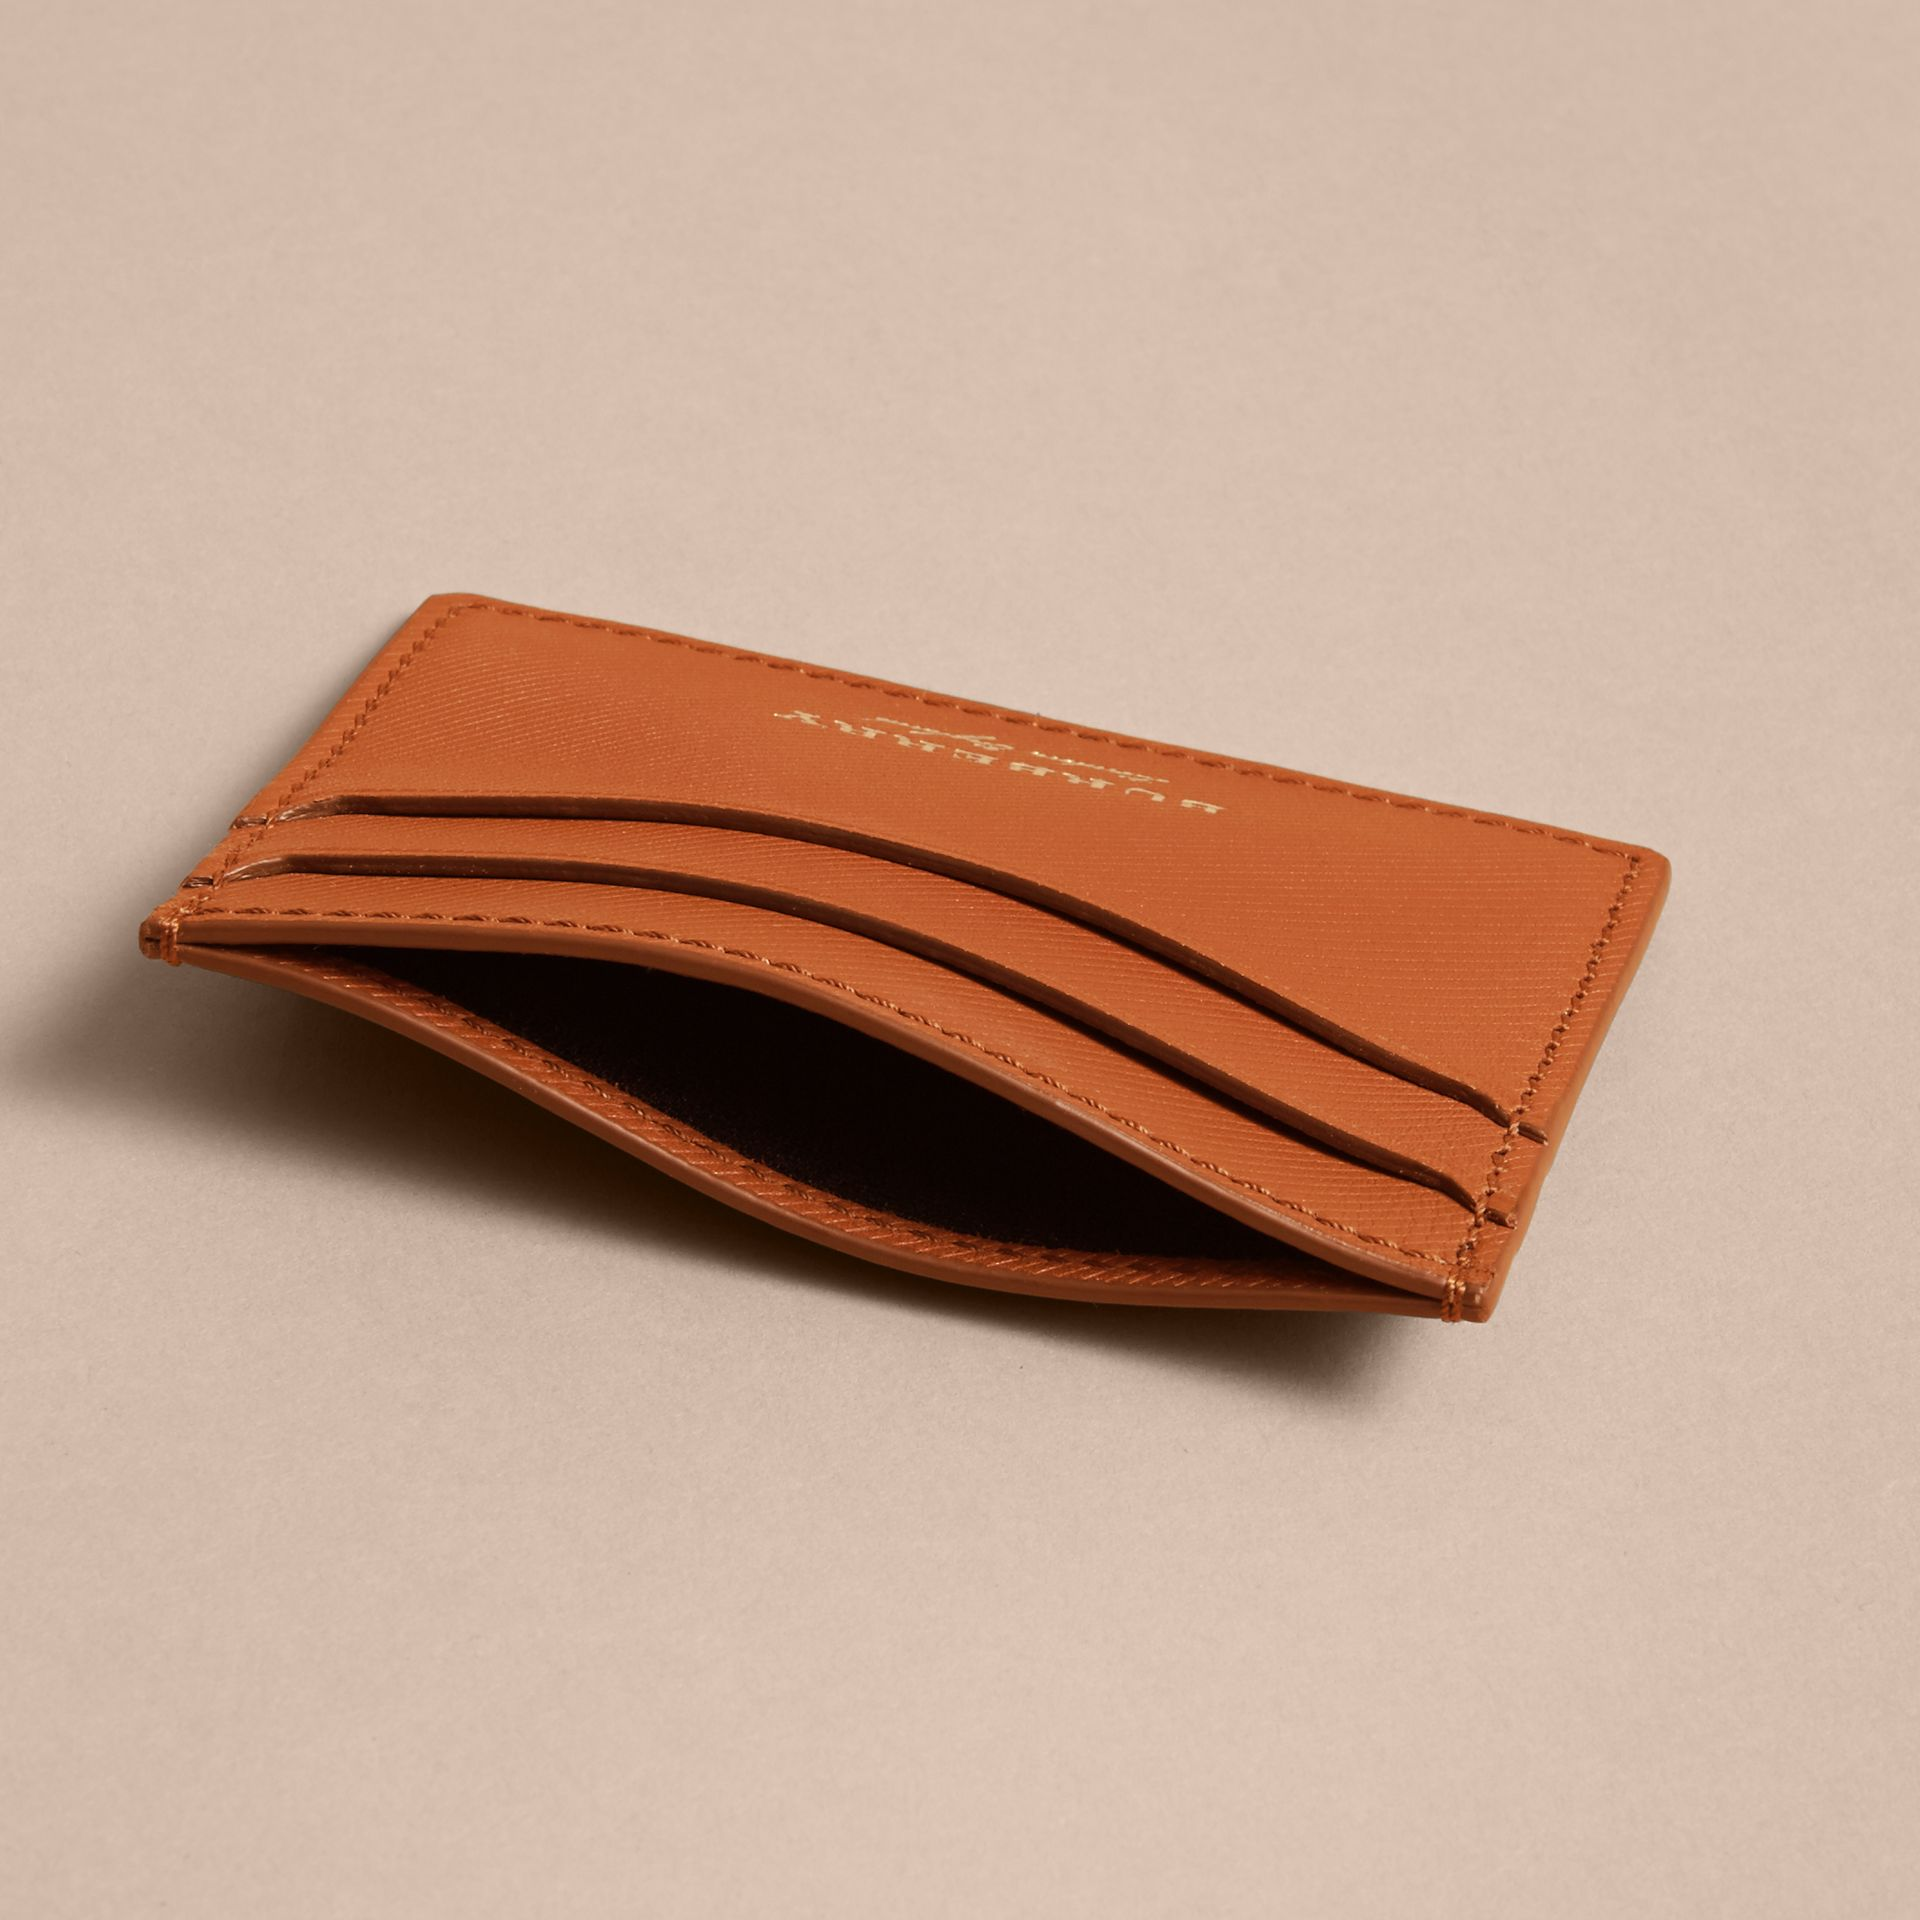 Trench Leather Card Case in Tan | Burberry - gallery image 4